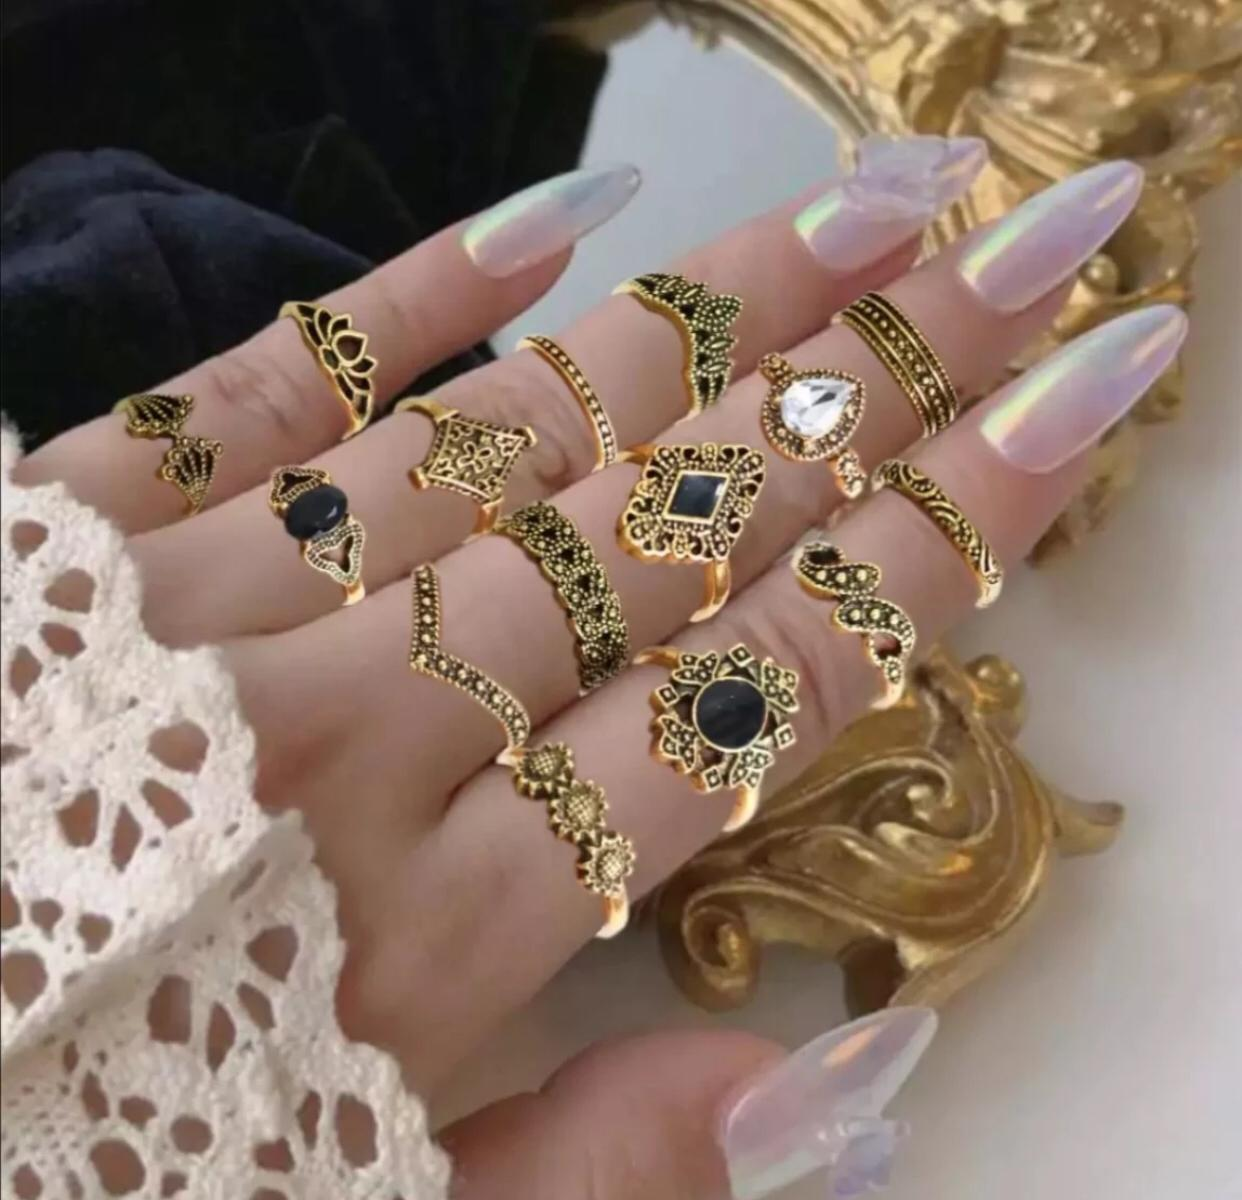 15 Pcs/Set Rings For Girls - High Quality Latest Design 15 Pieces Ring Set For Girls - Ring Set For Women